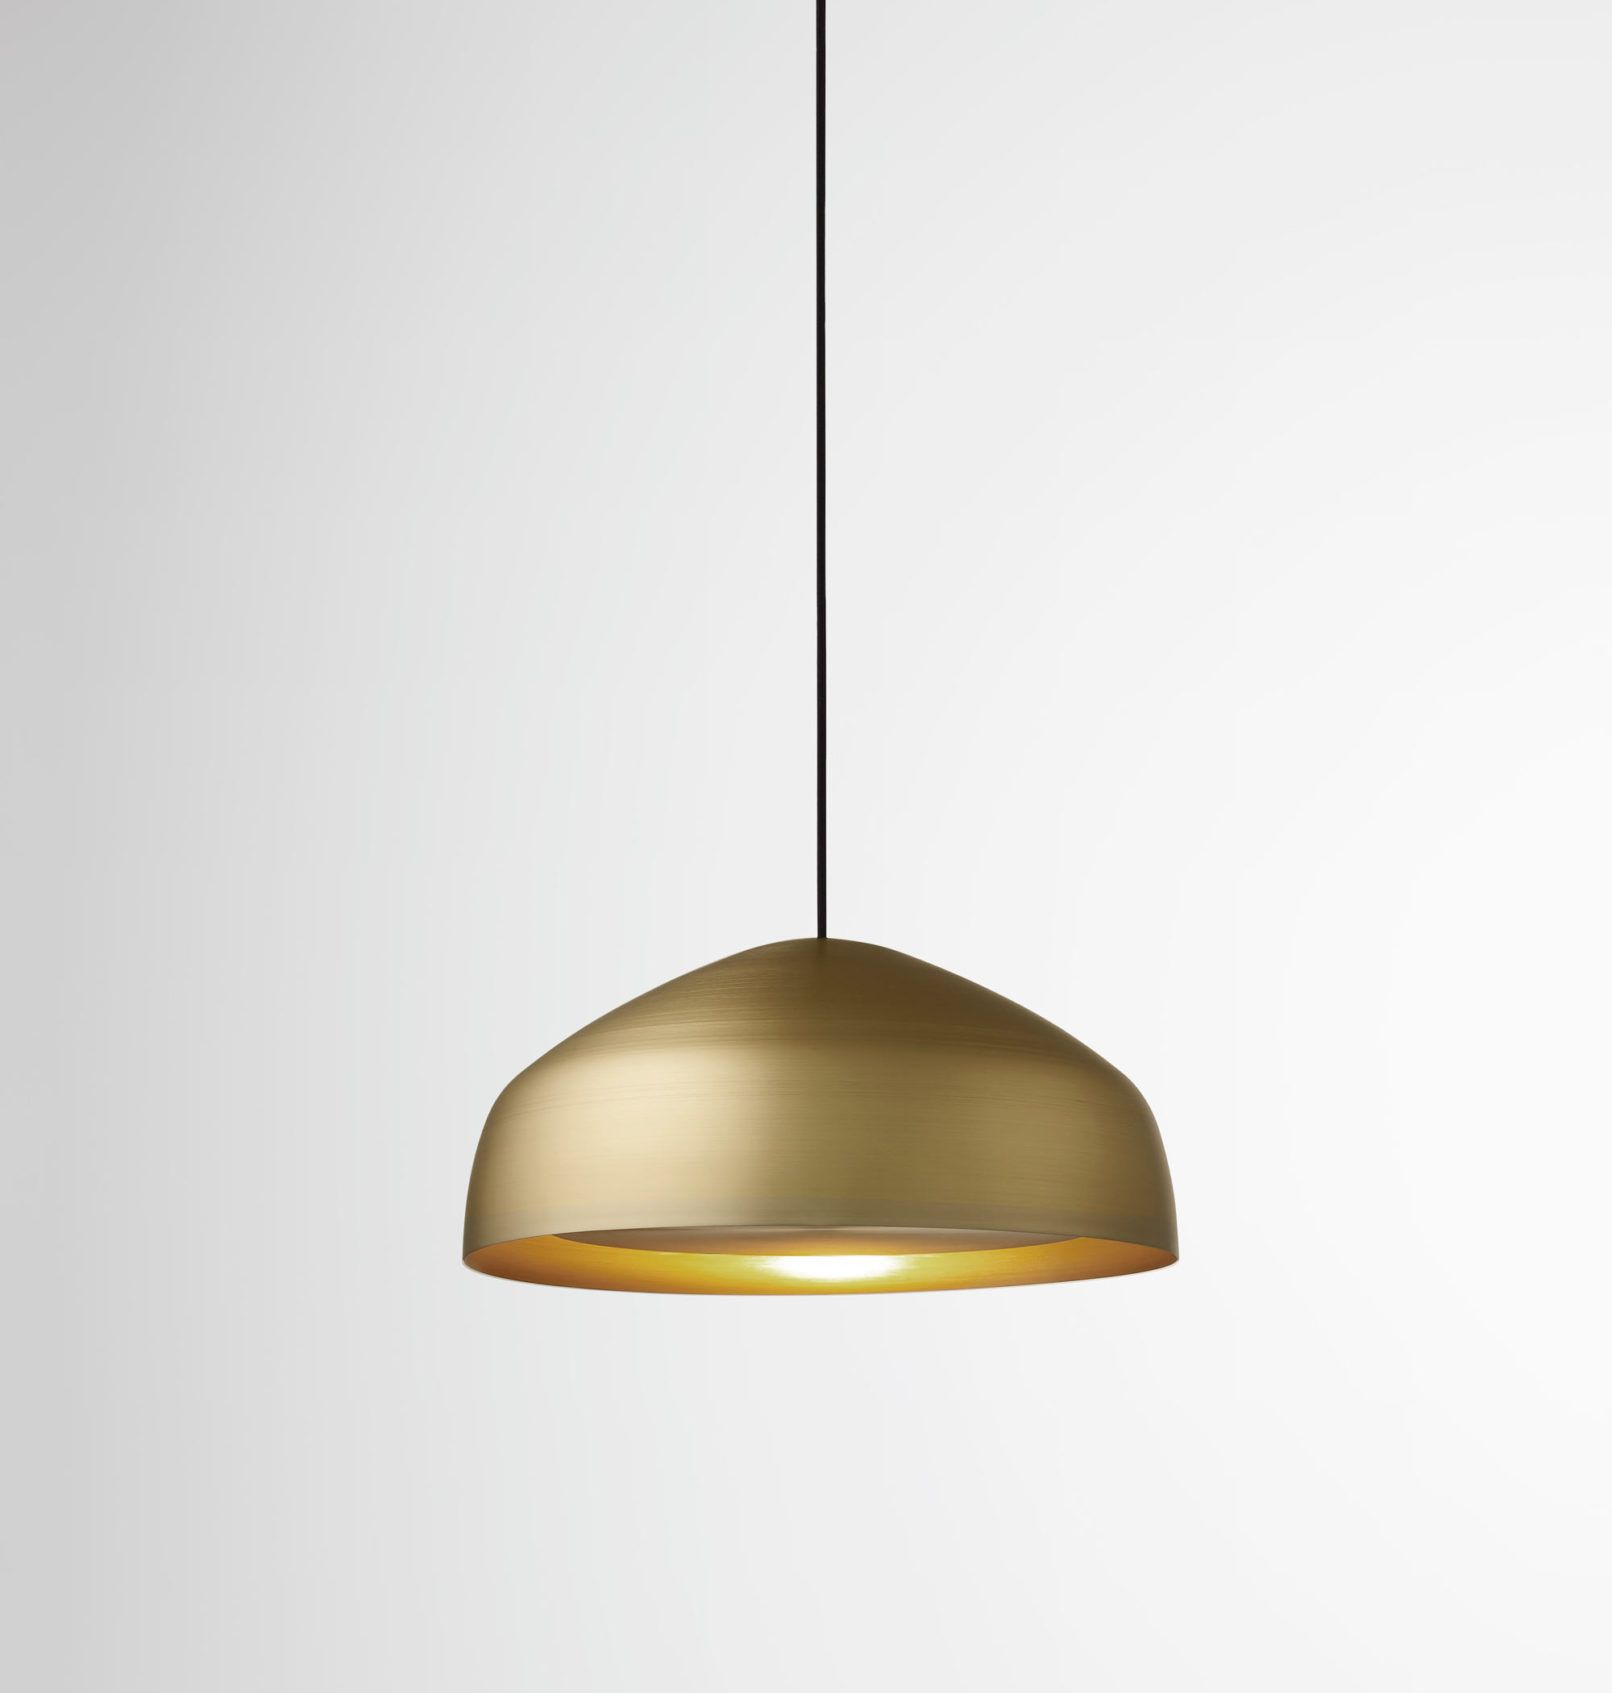 contemporary lighting melbourne. Sitting Between Timeless And Contemporary, The Ora Pendant Light Features A Floating Disk Surrounded By Beautifully Gentle Glow. Made In Melbourne. Contemporary Lighting Melbourne